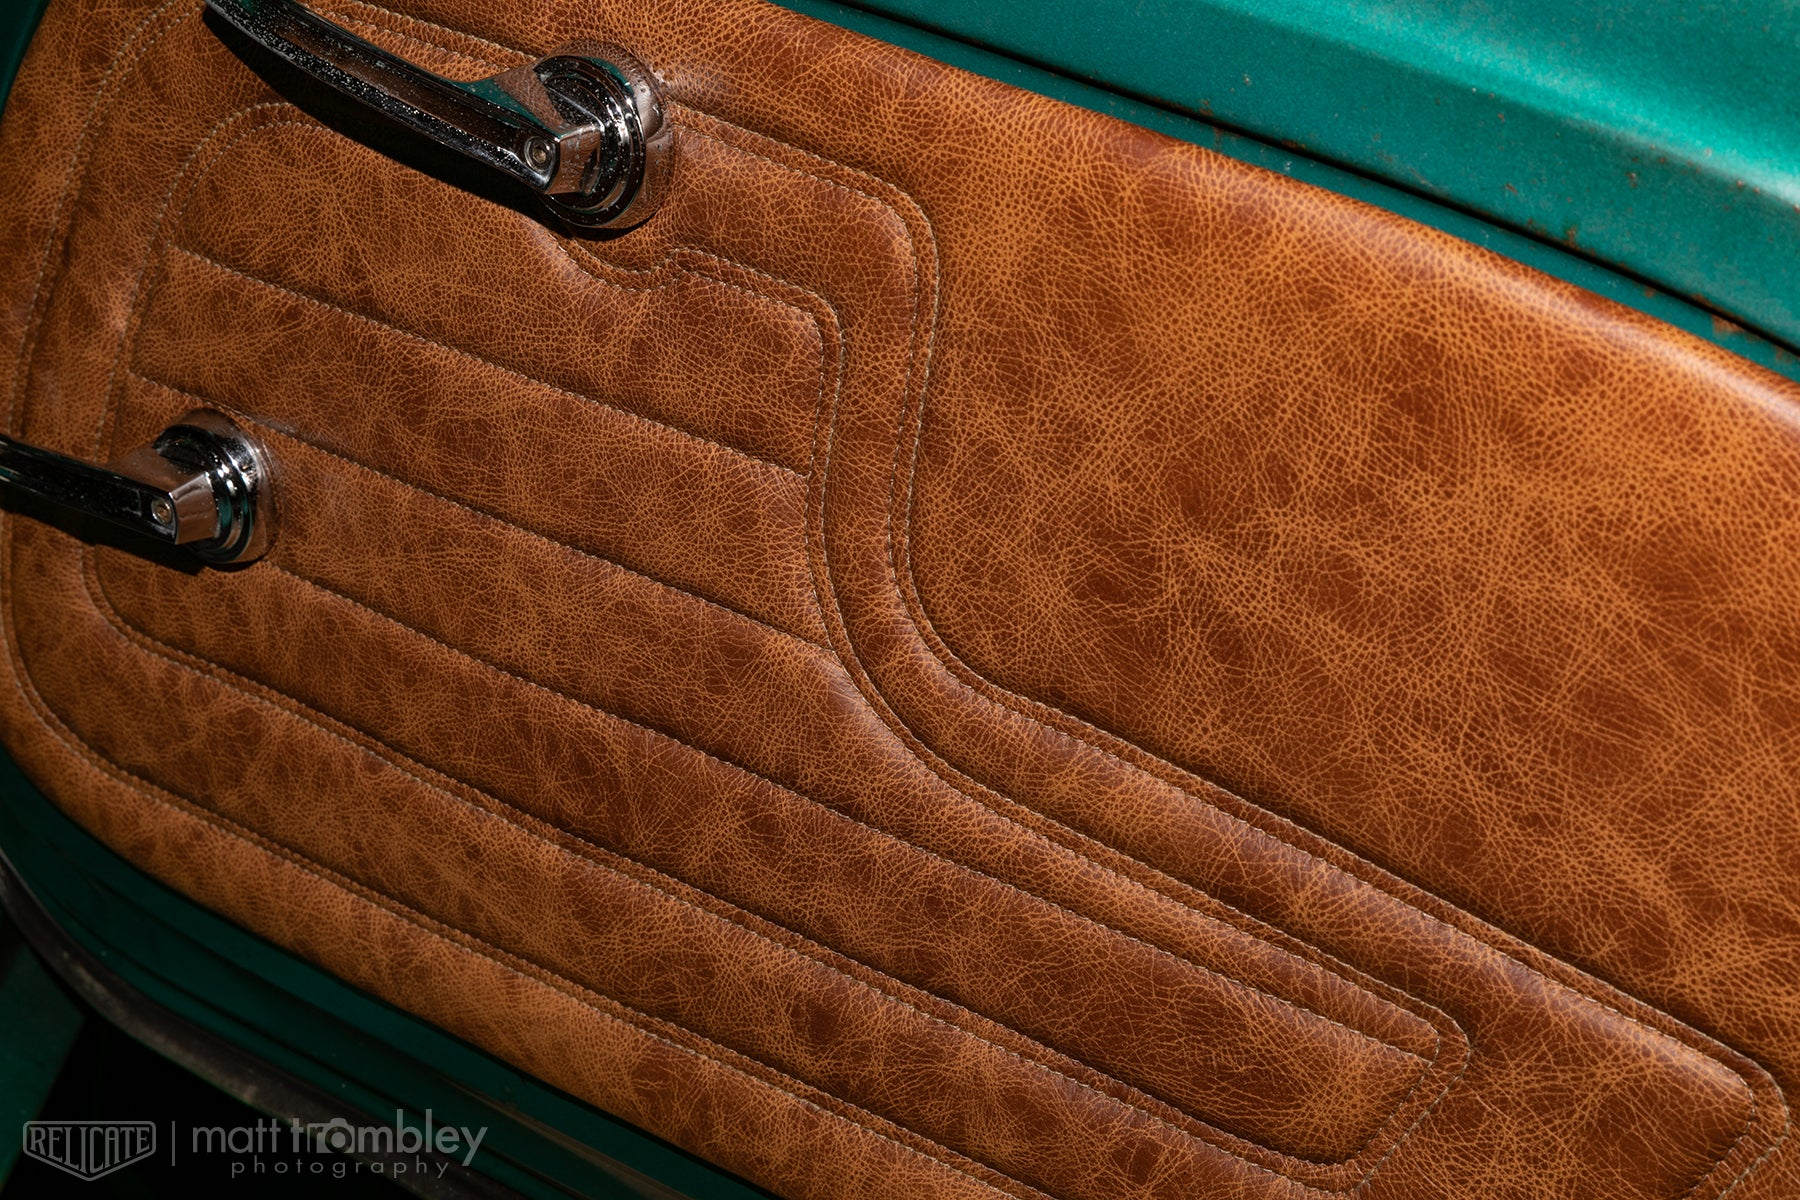 1969 Jeepster Commando RoamR Relicate Distressed Leather Interor